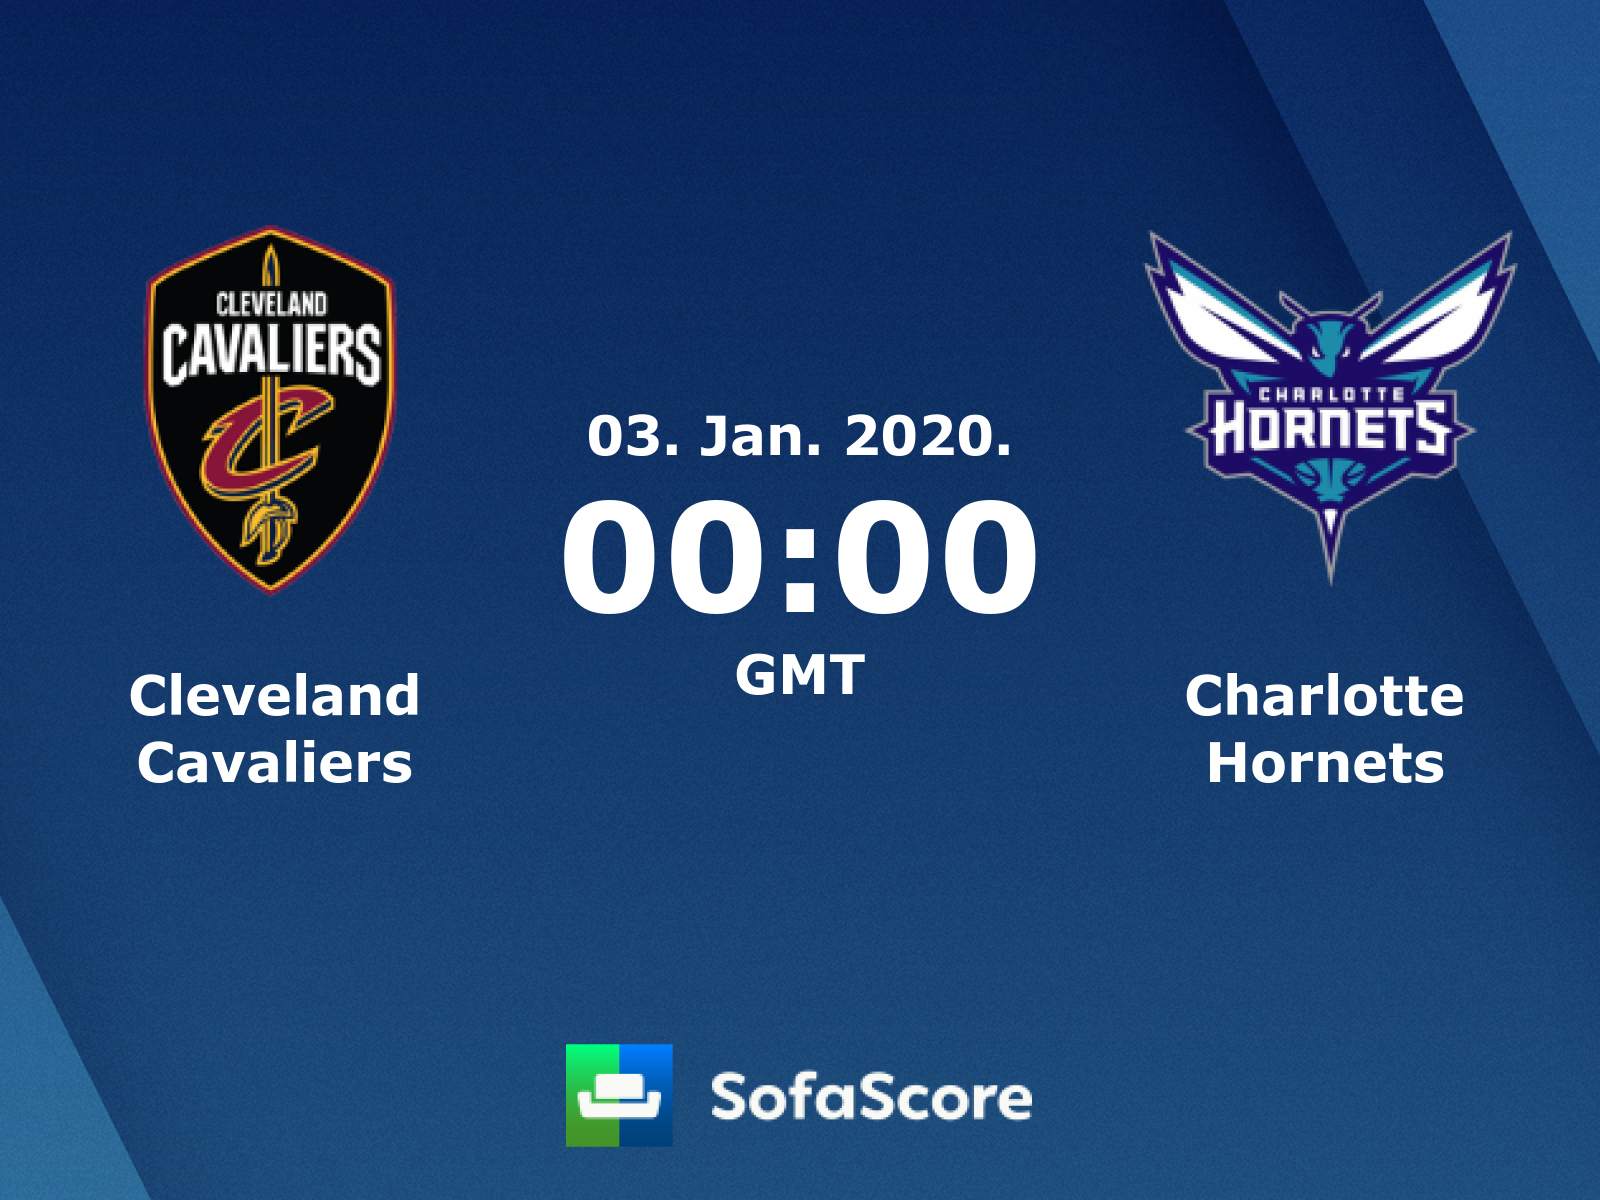 cleveland cavaliers vs charlotte hornets live stream free